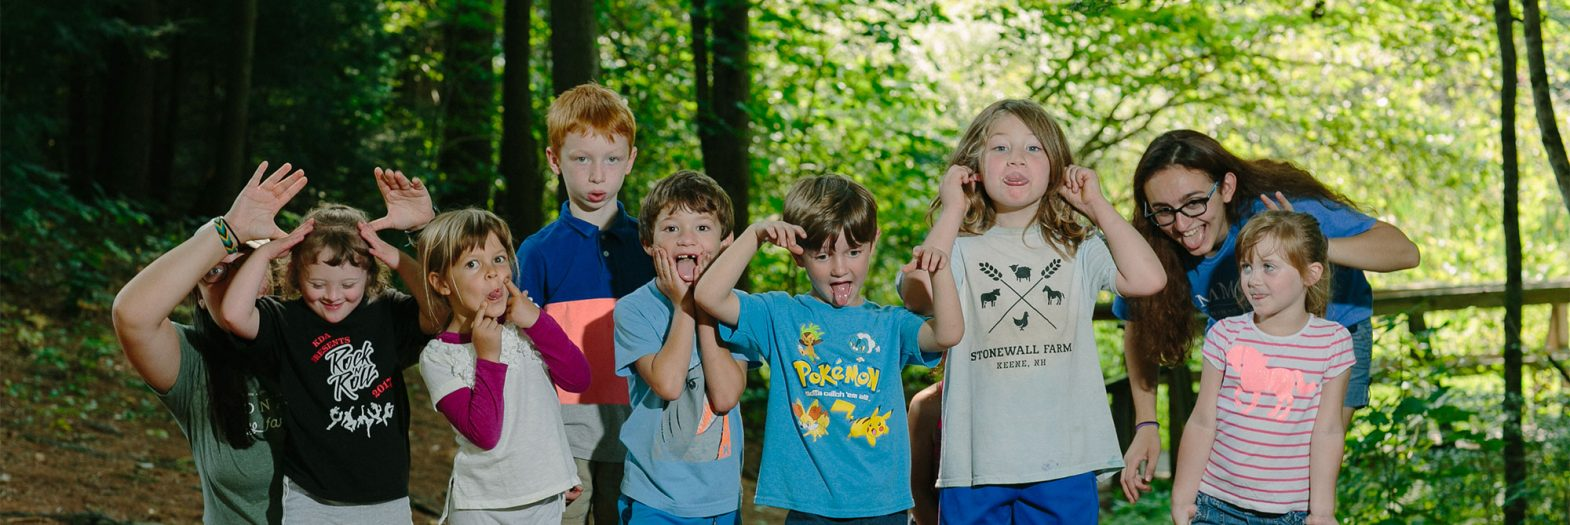 Camp group posing for a picture making funny faces